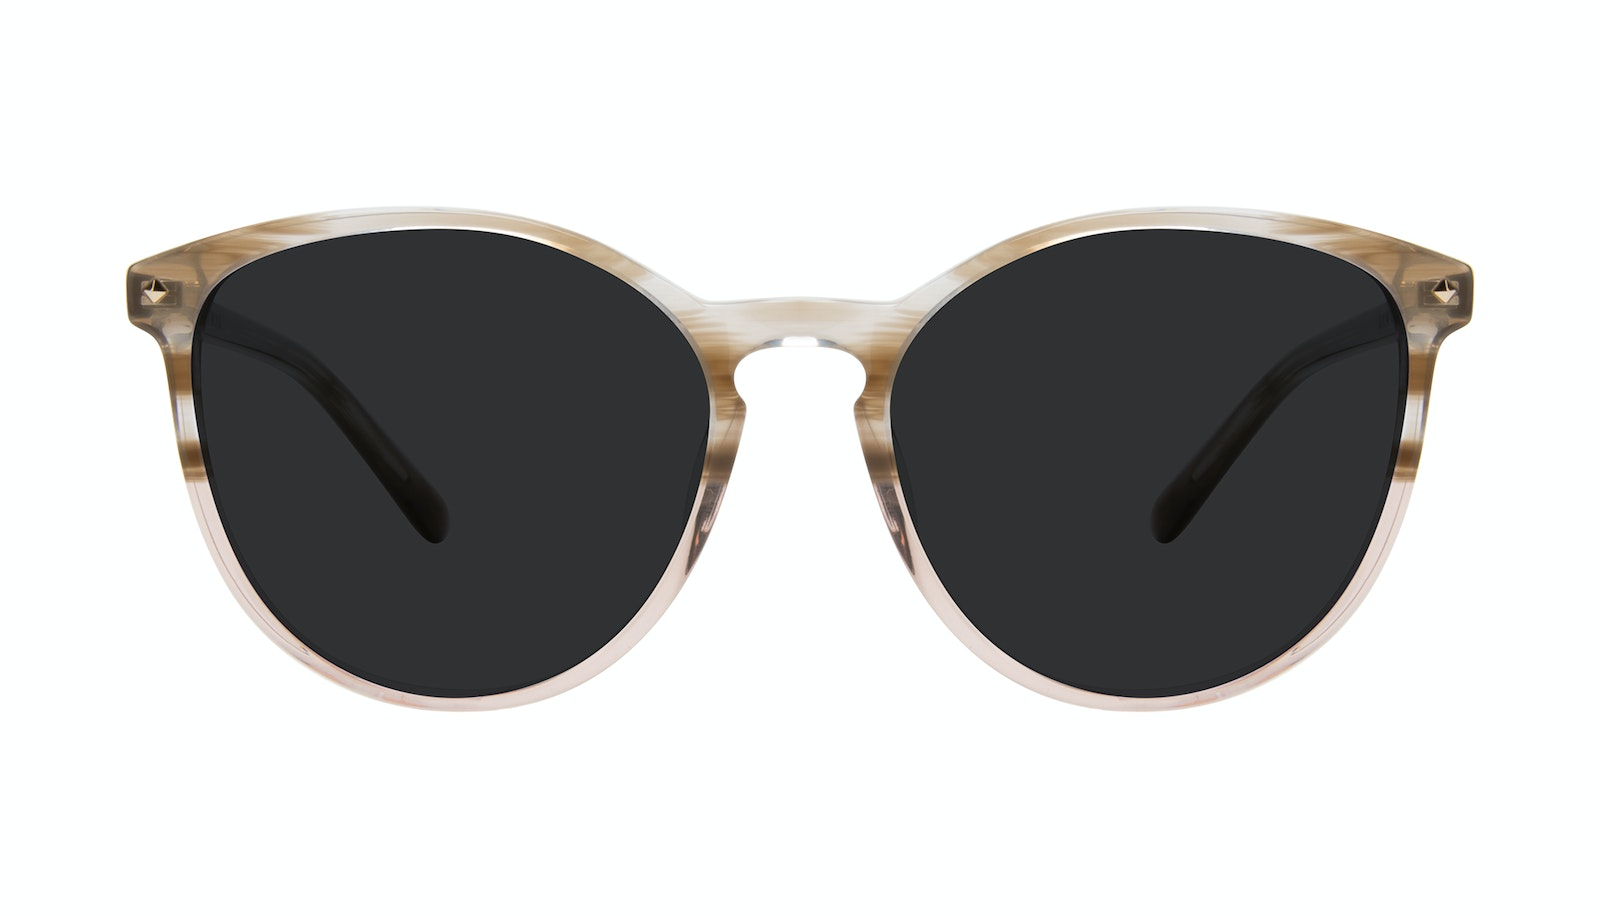 Affordable Fashion Glasses Round Sunglasses Women Viva Rosewood